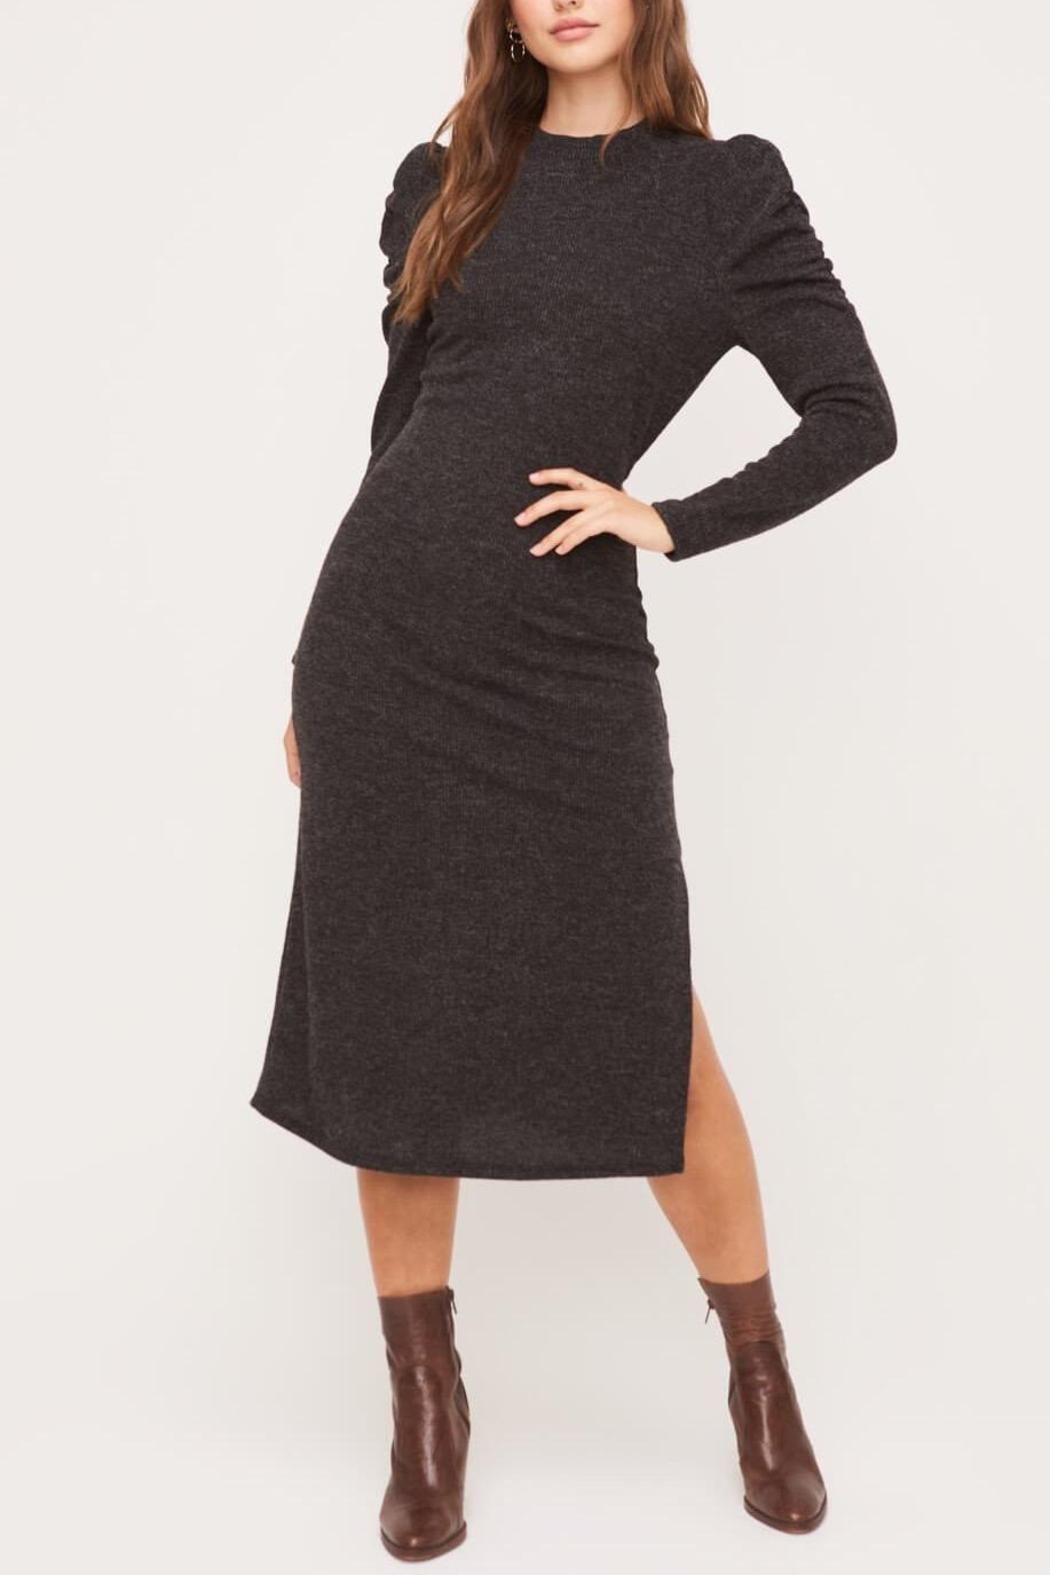 Lush Clothing  Puff-Shoulder Knit Dress - Back Cropped Image